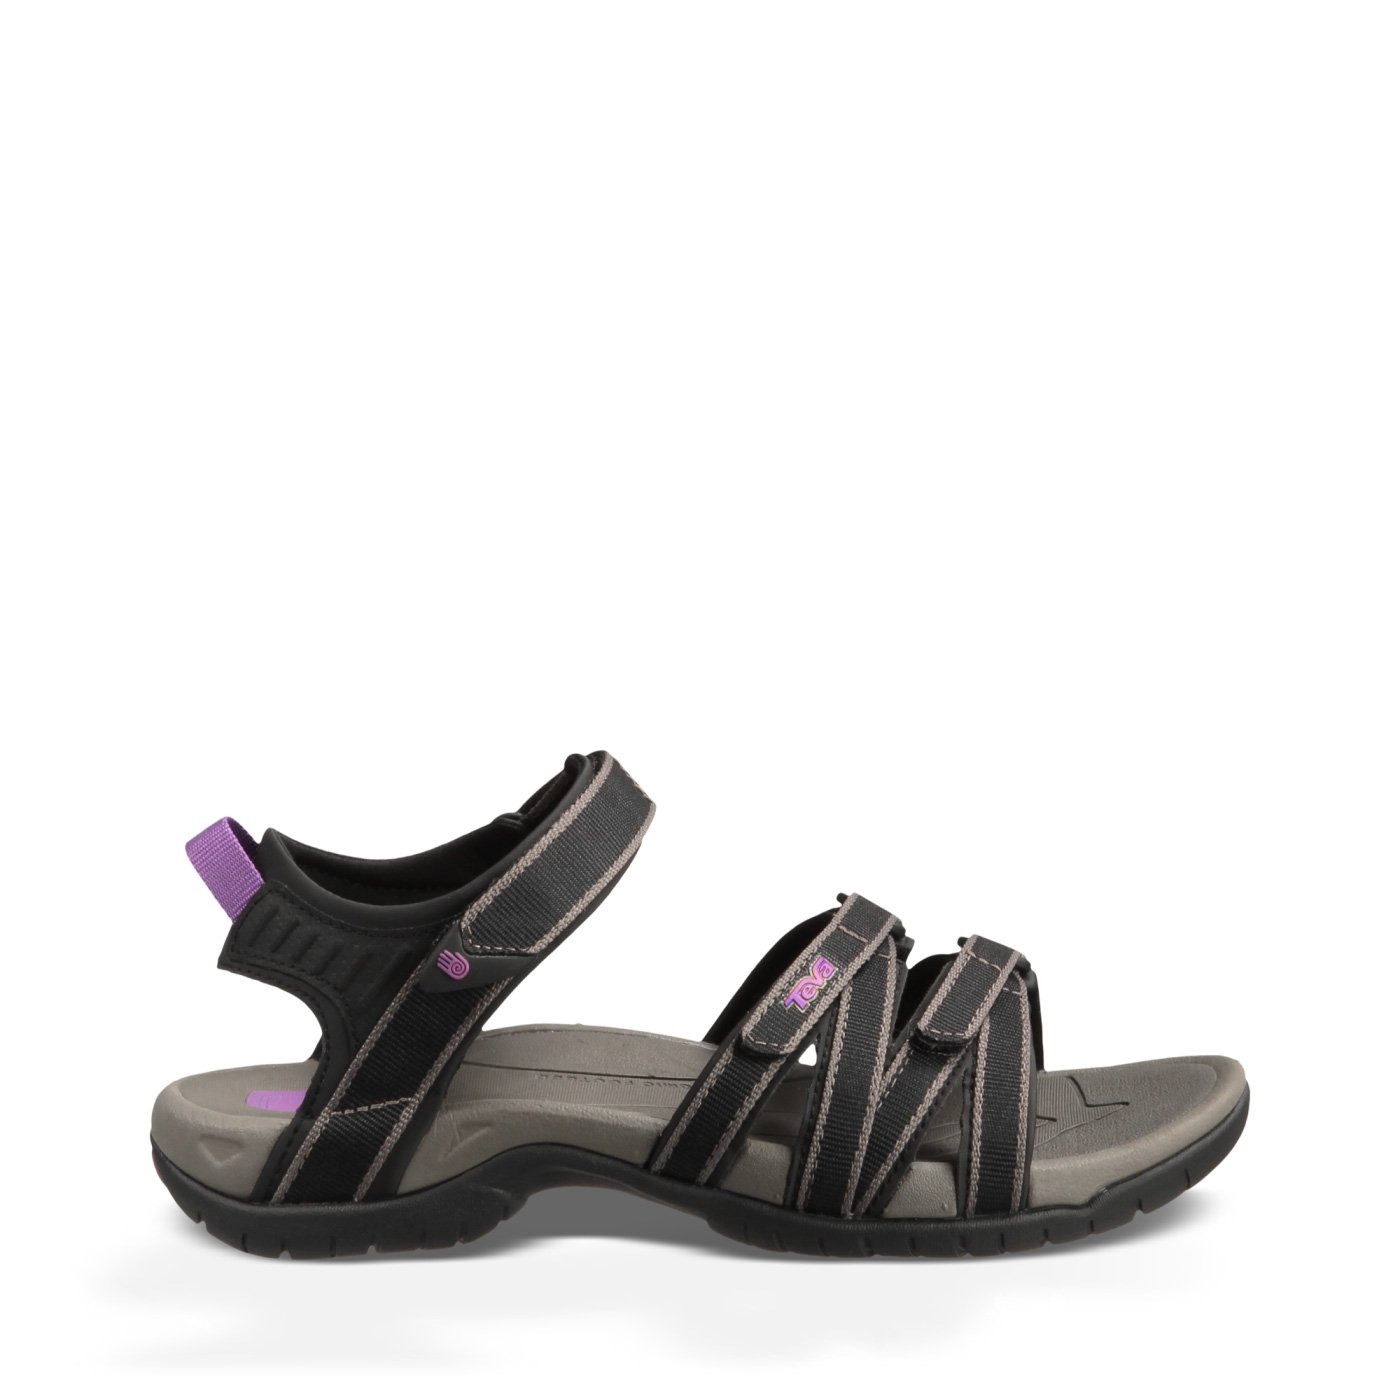 Teva Women's Tirra Sandal,Black/Grey,8 M US